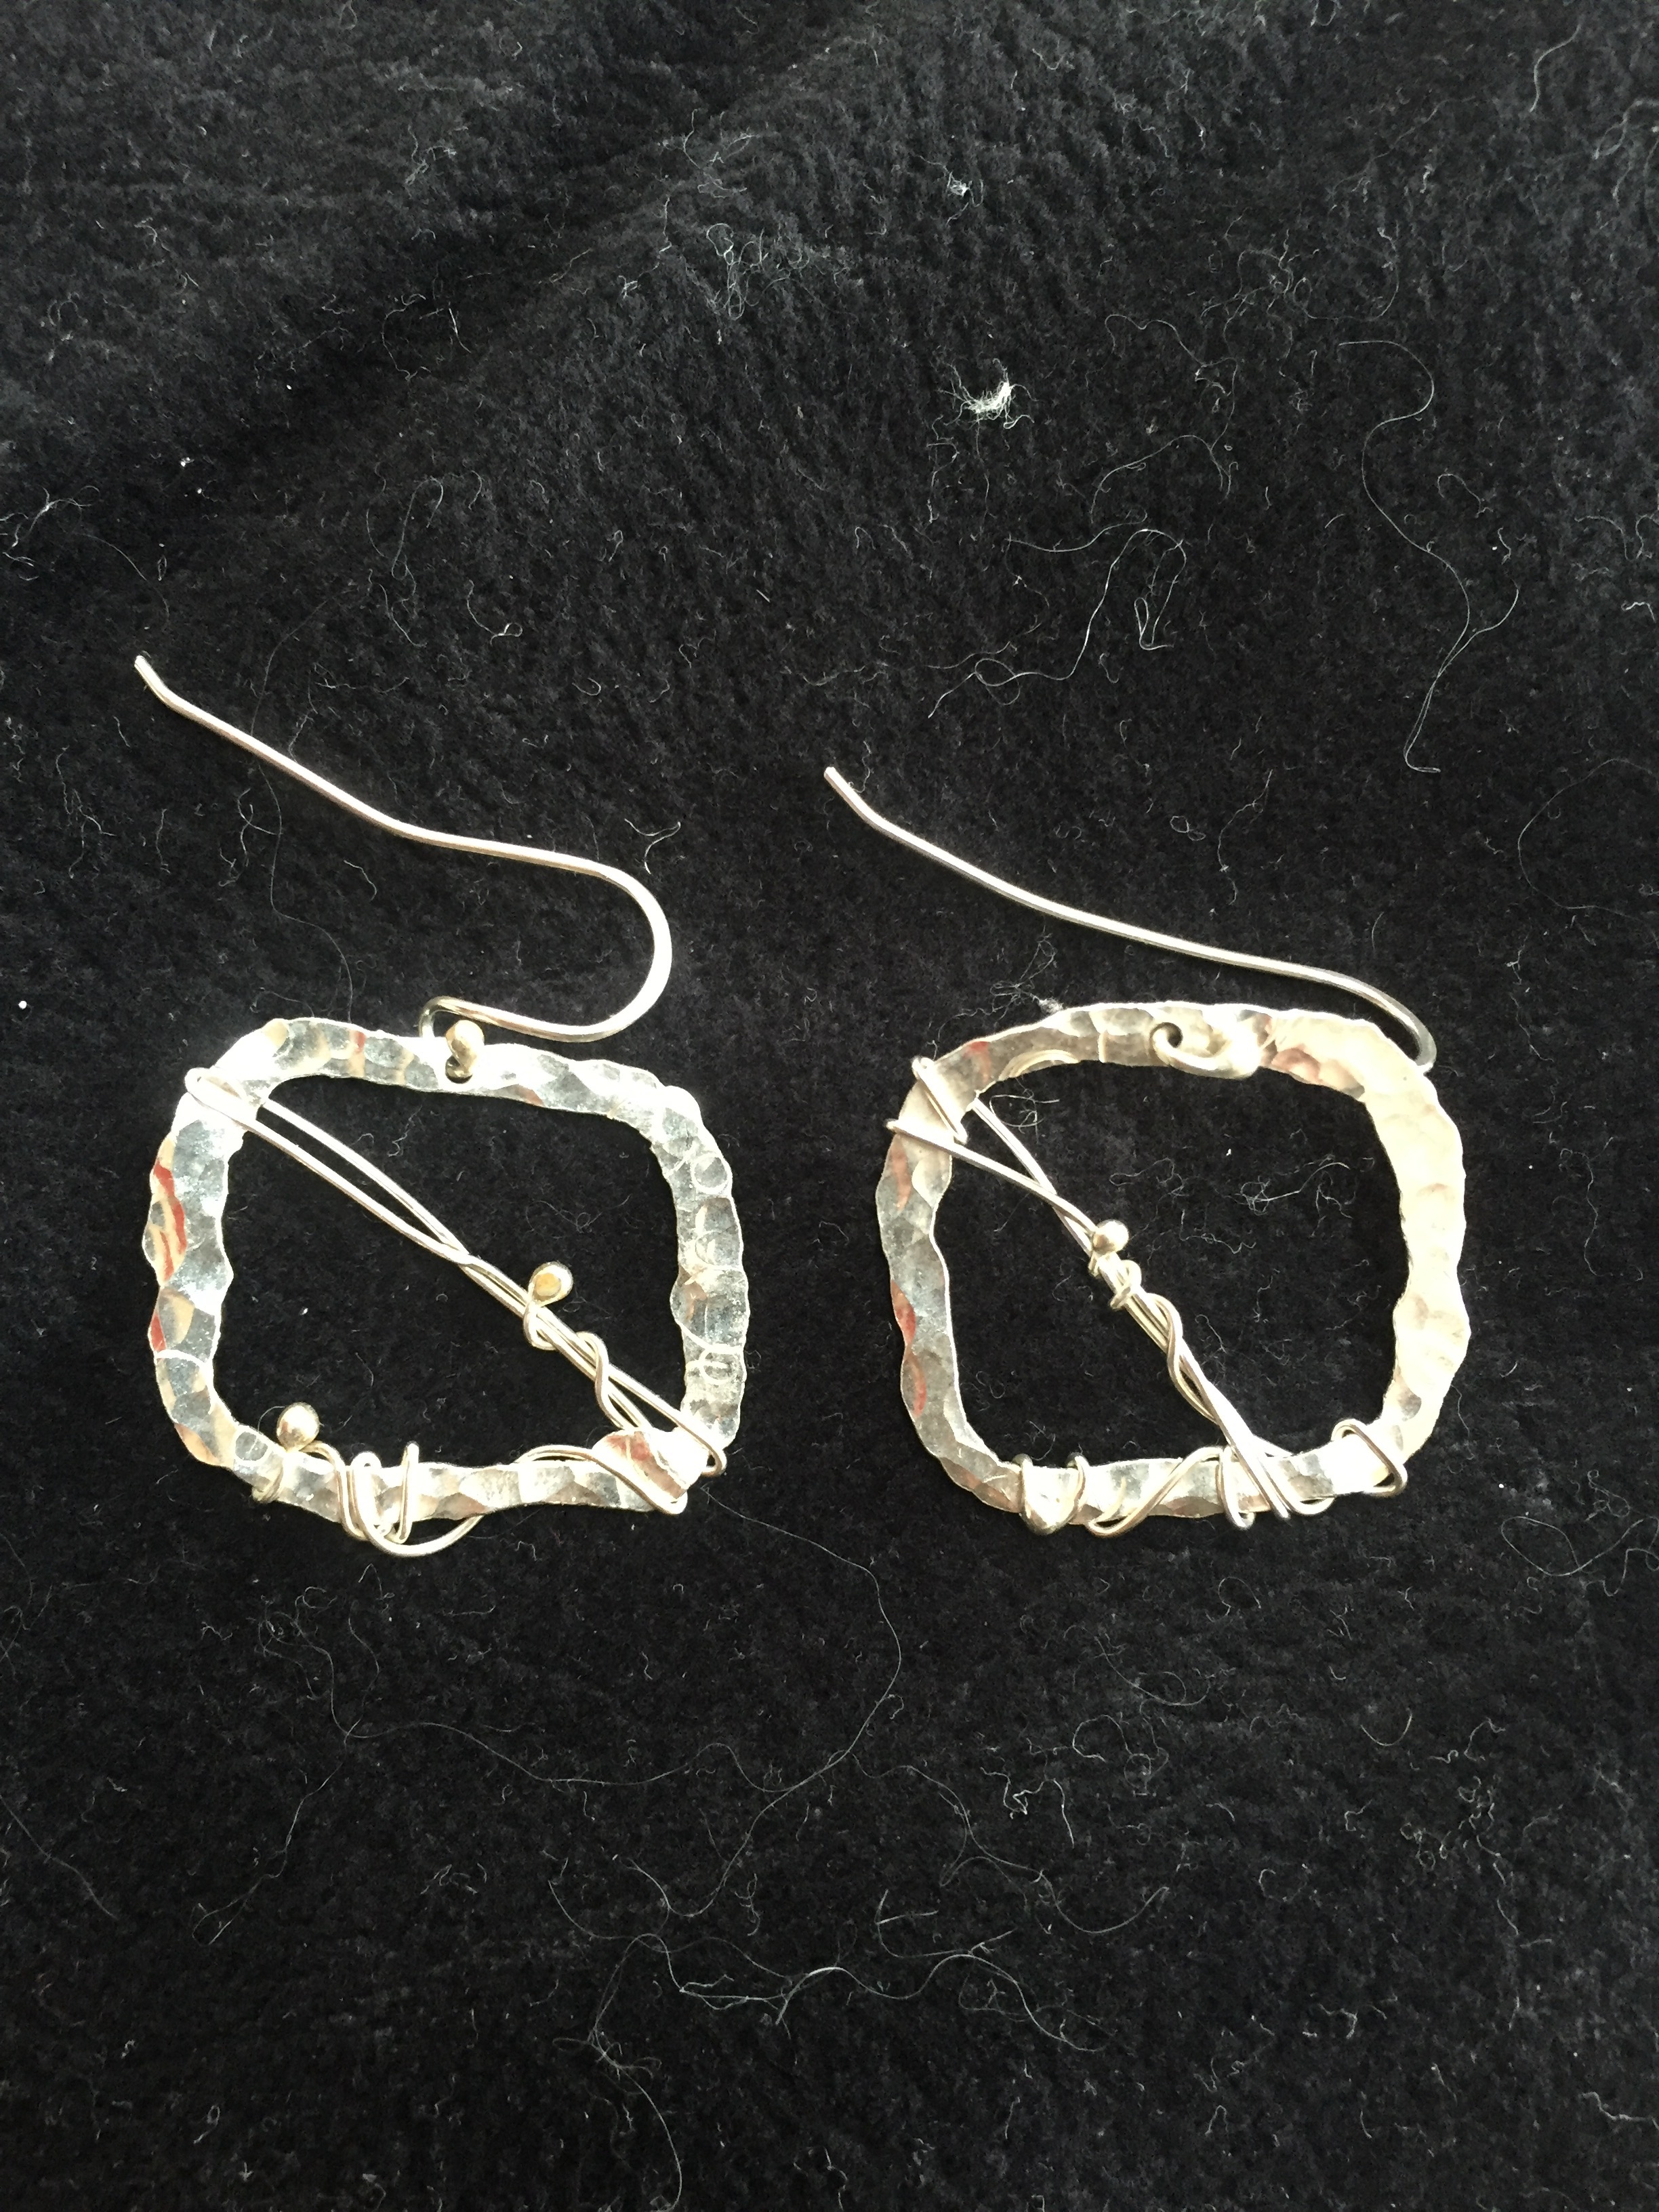 Earrings no.3   $50